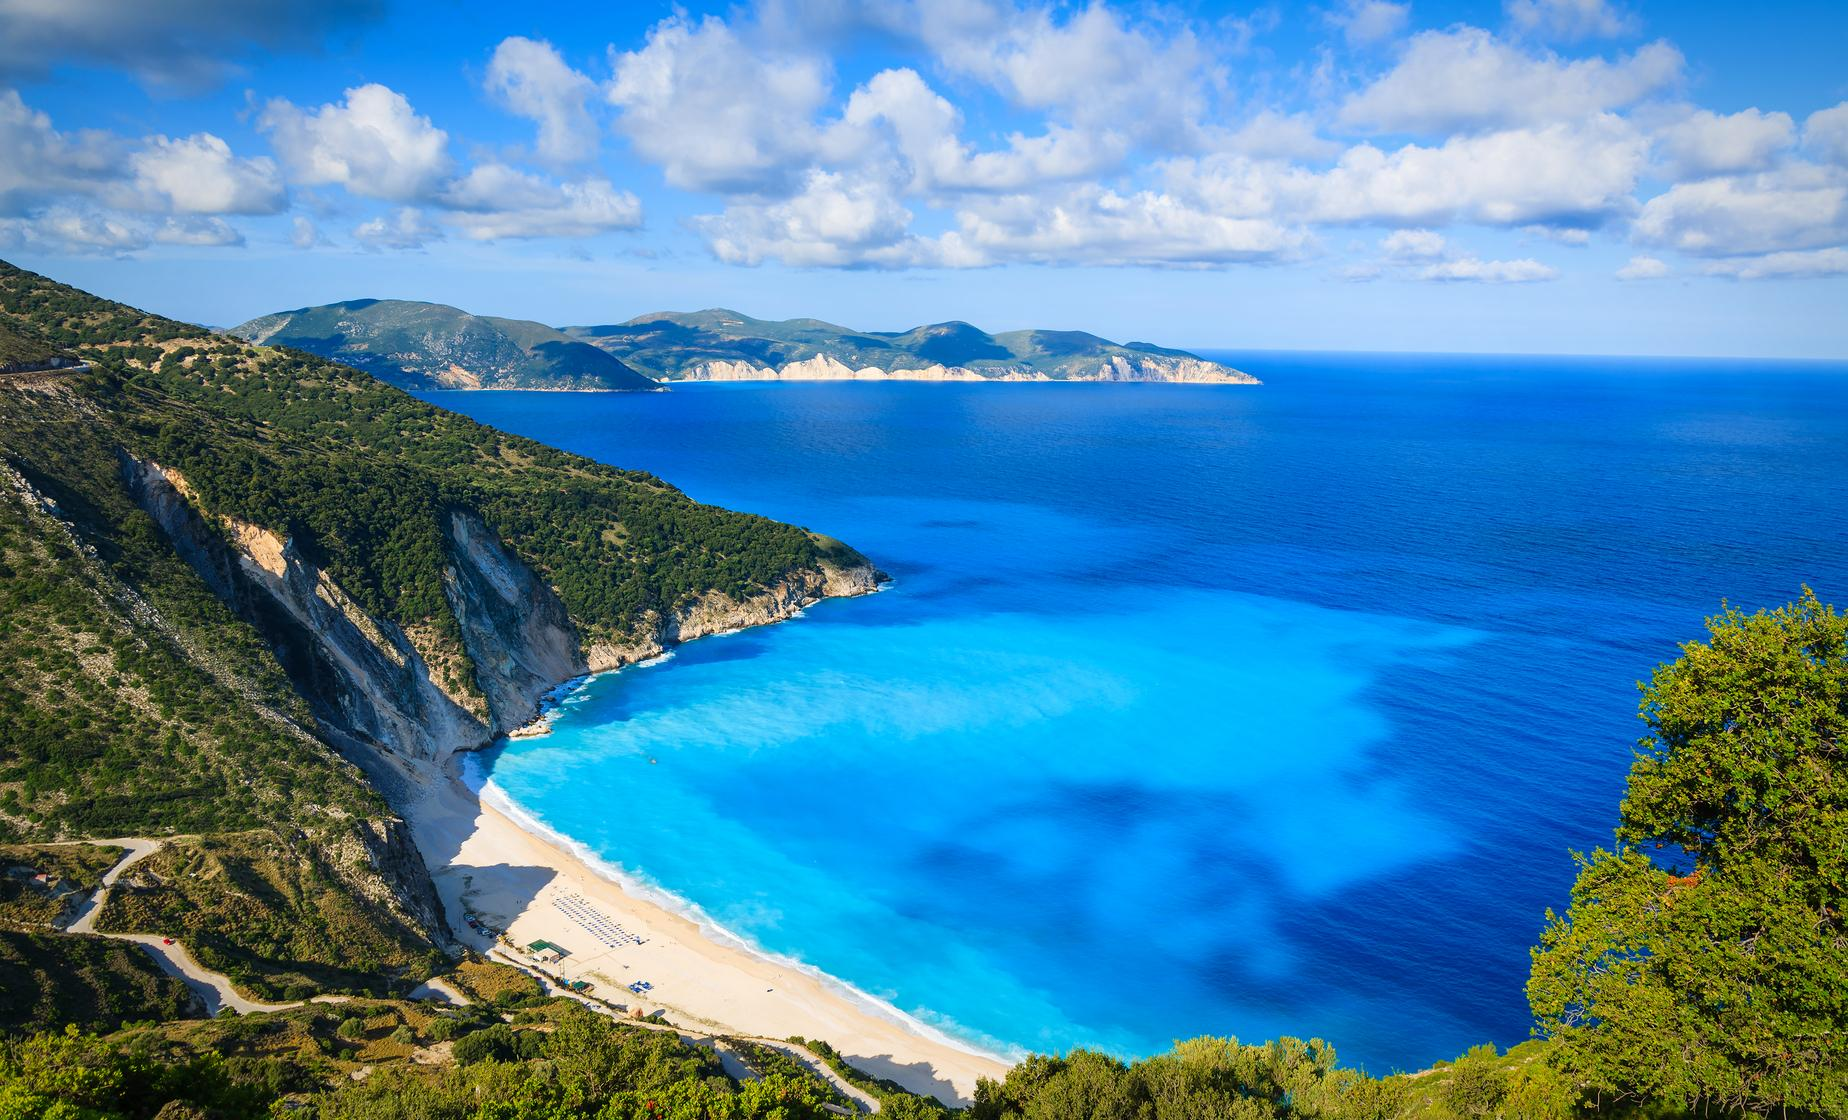 Scenes of Kefalonia